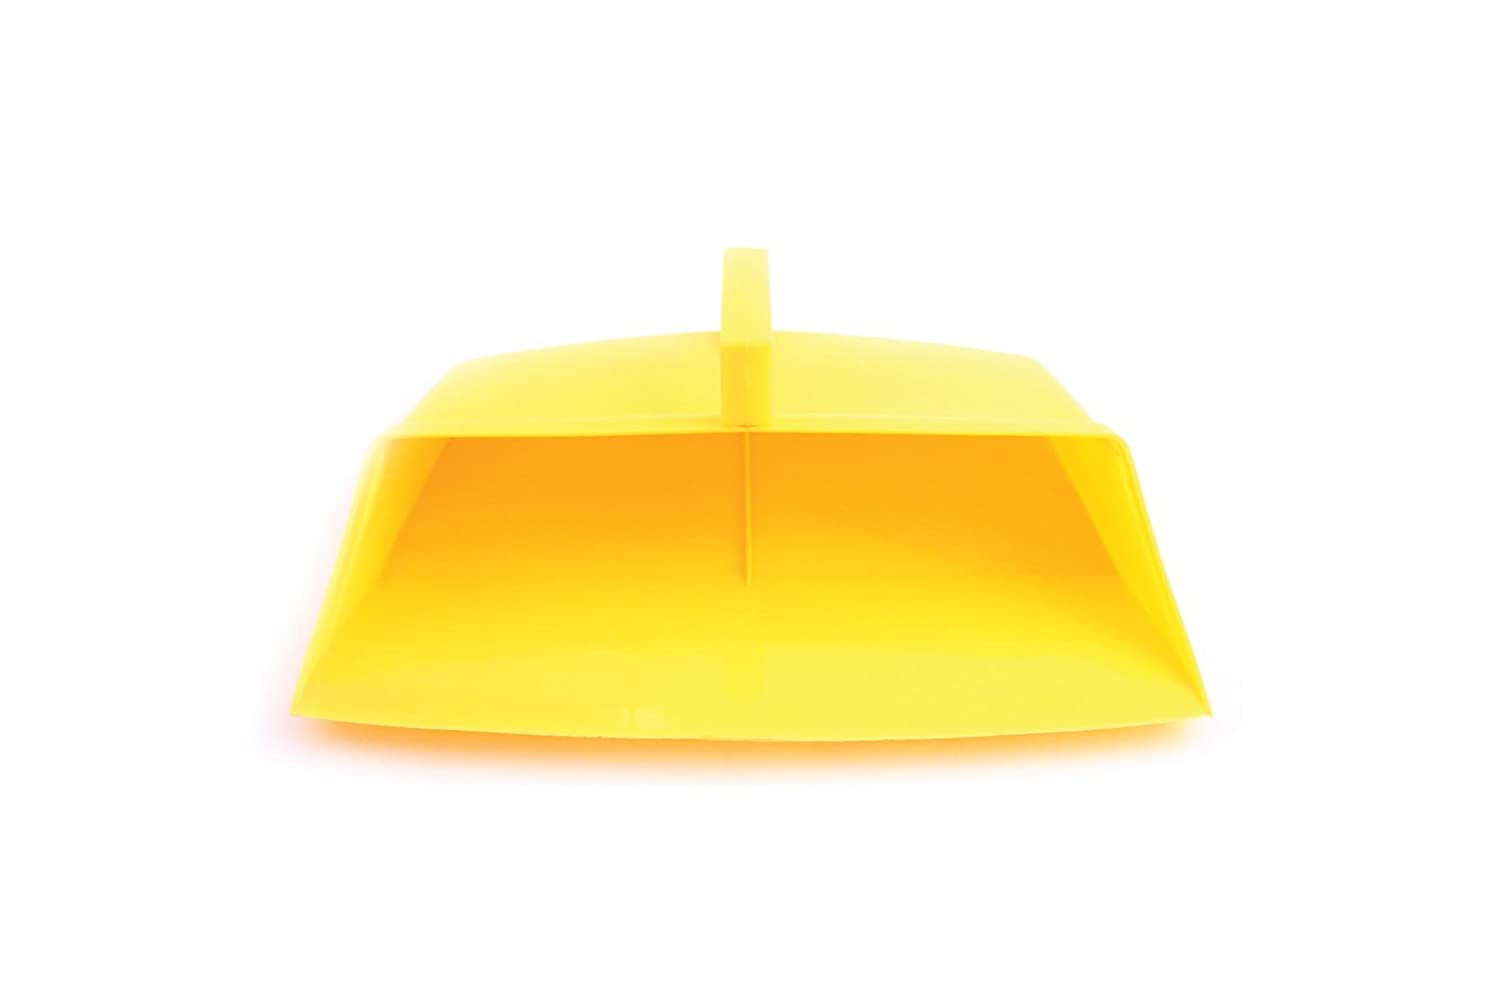 Bentley Industrial P0012/YELLOW Large Hooded Dustpan with Hanging Hook, Yellow Charles Bentley & Son Ltd